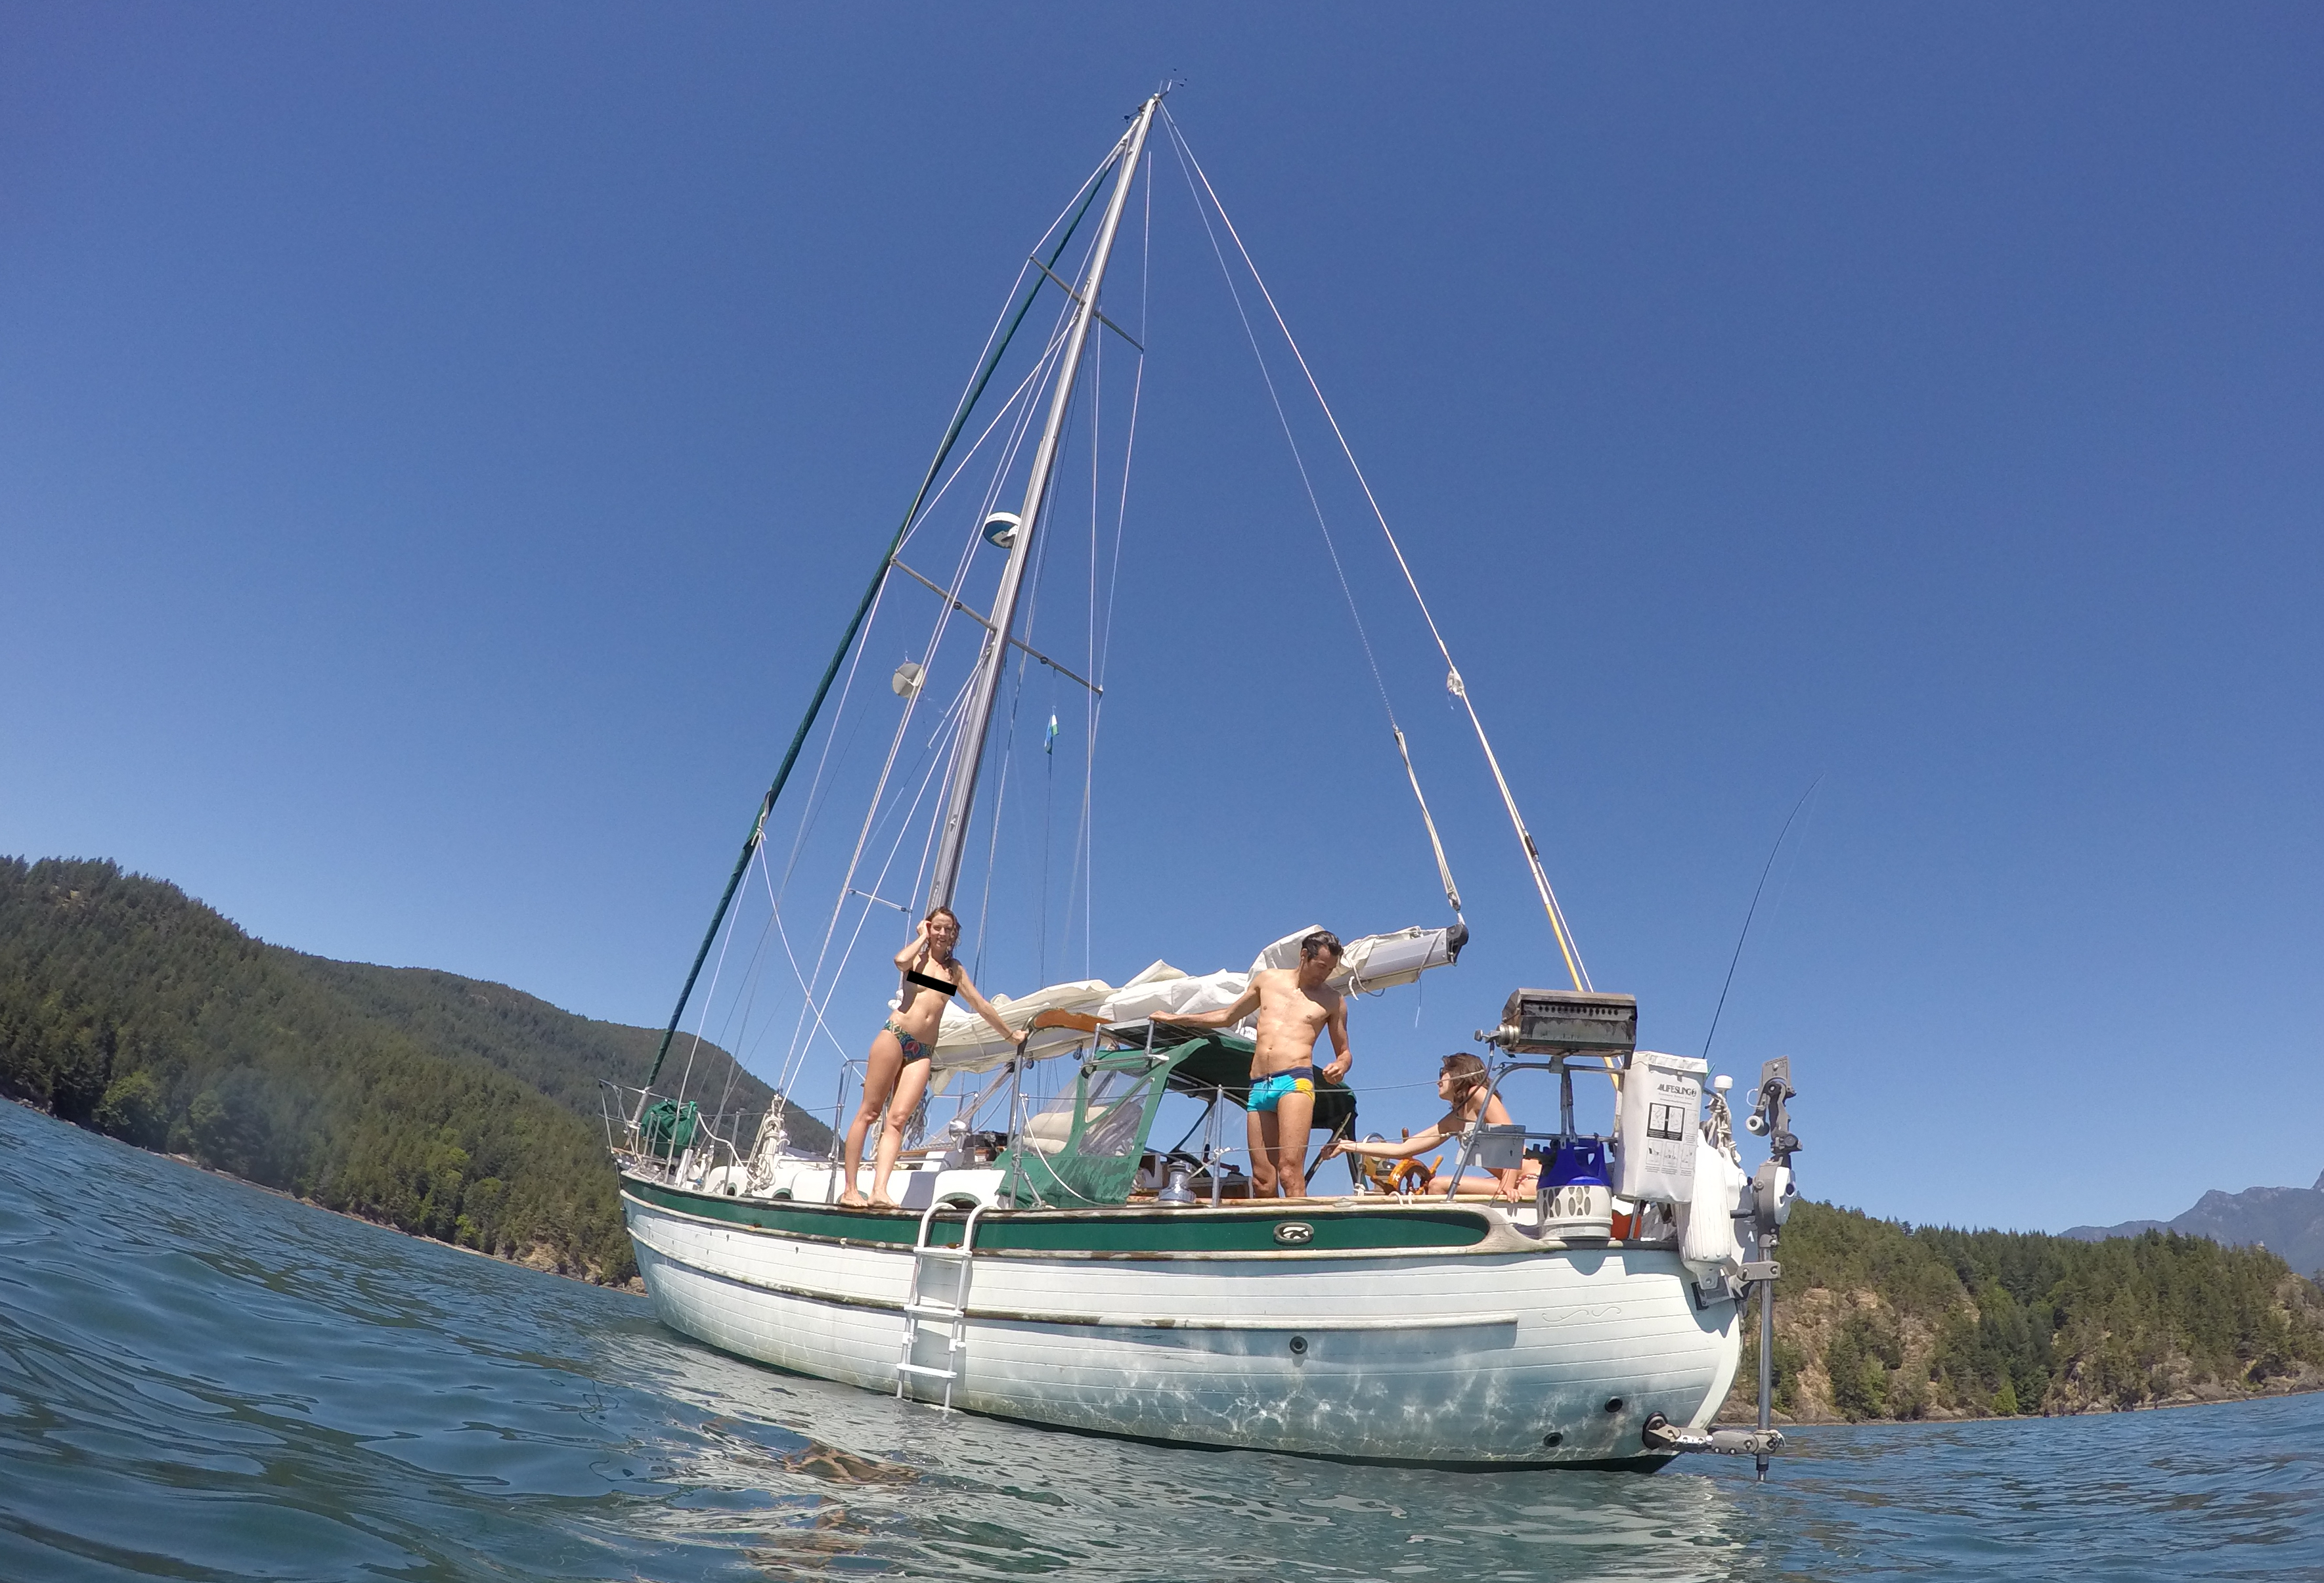 Sailing and swimming with our friends